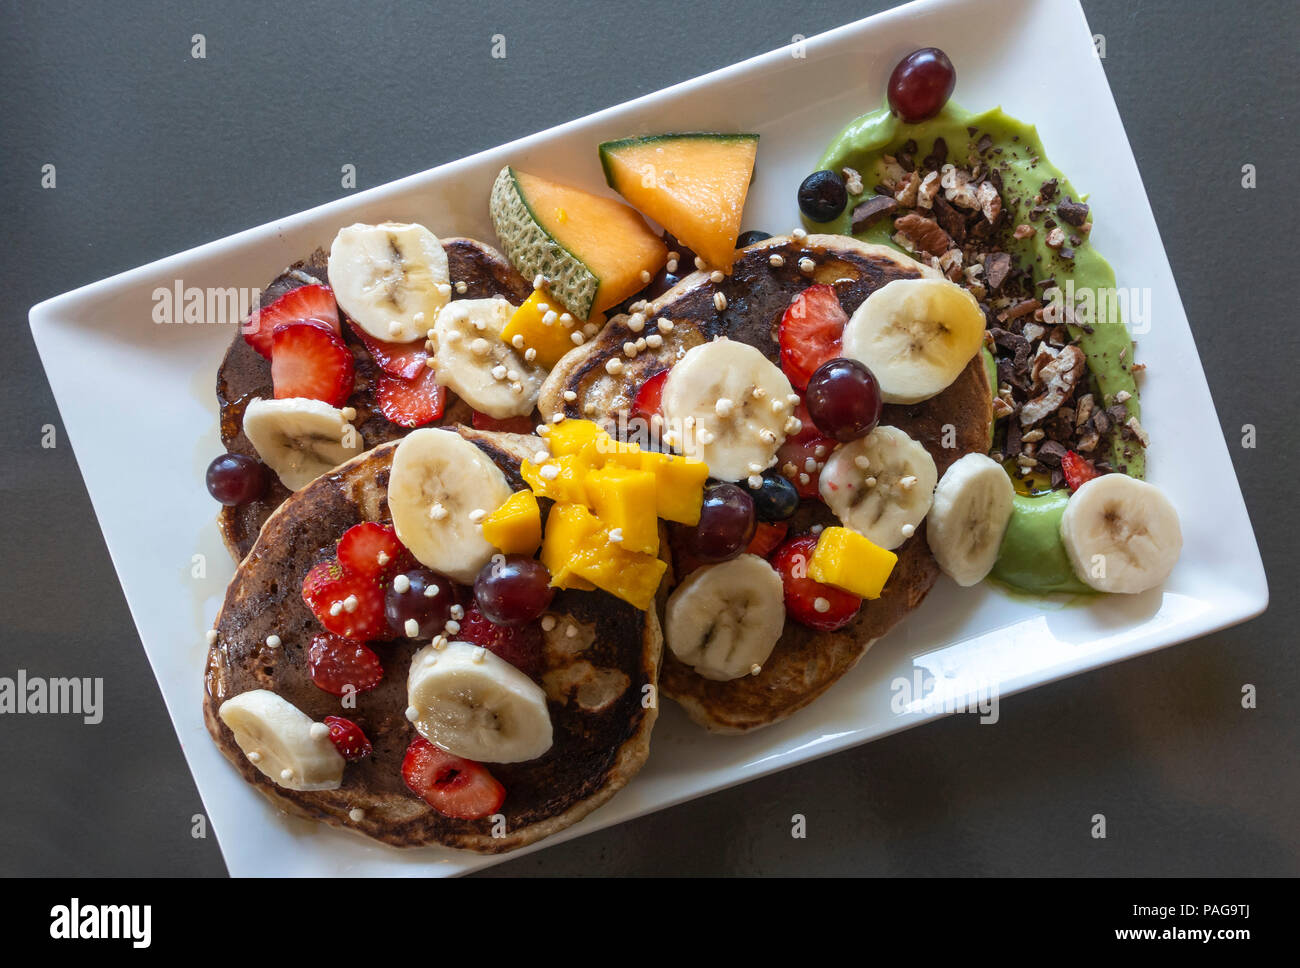 pancakes-with-mixed-fresh-fruit-PAG9TJ.j